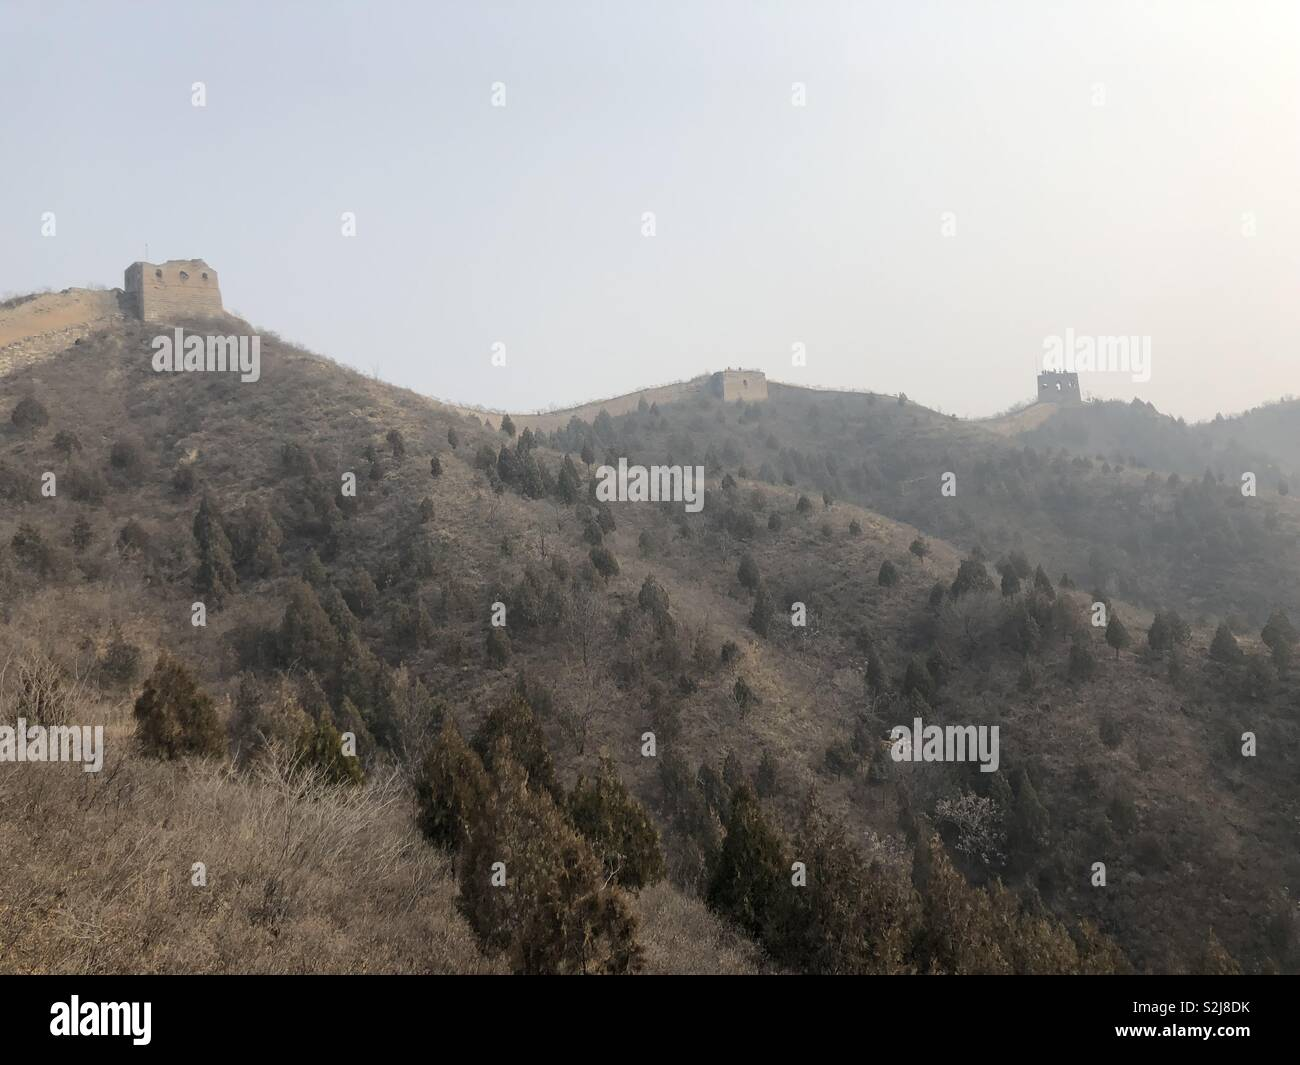 The Great Wall of China on the skyline in wistful weather - Stock Image